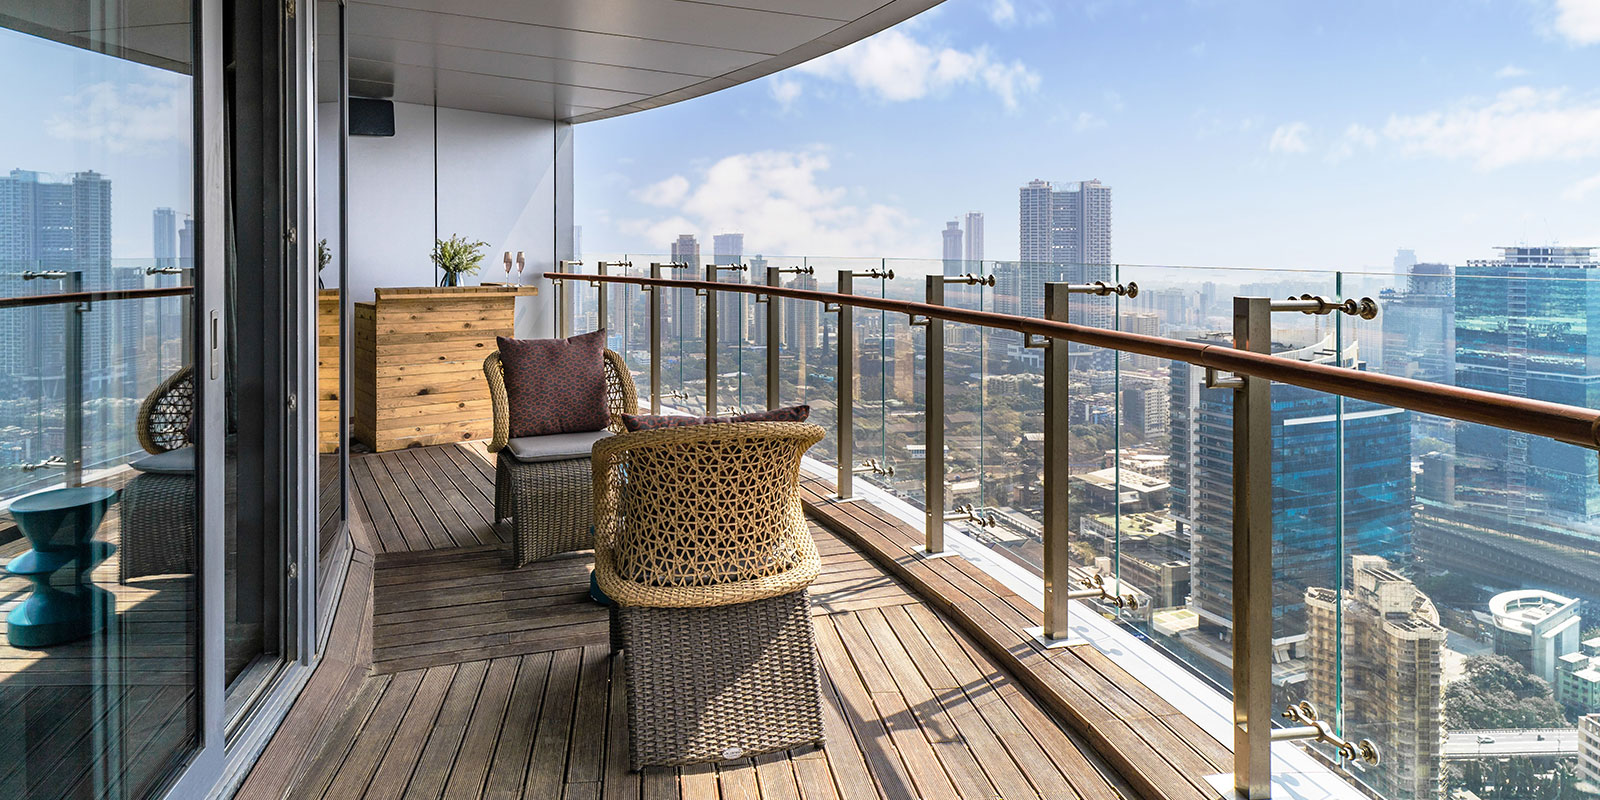 Expansive viewing decks for you to take in the breathtaking views of the city's skyline.